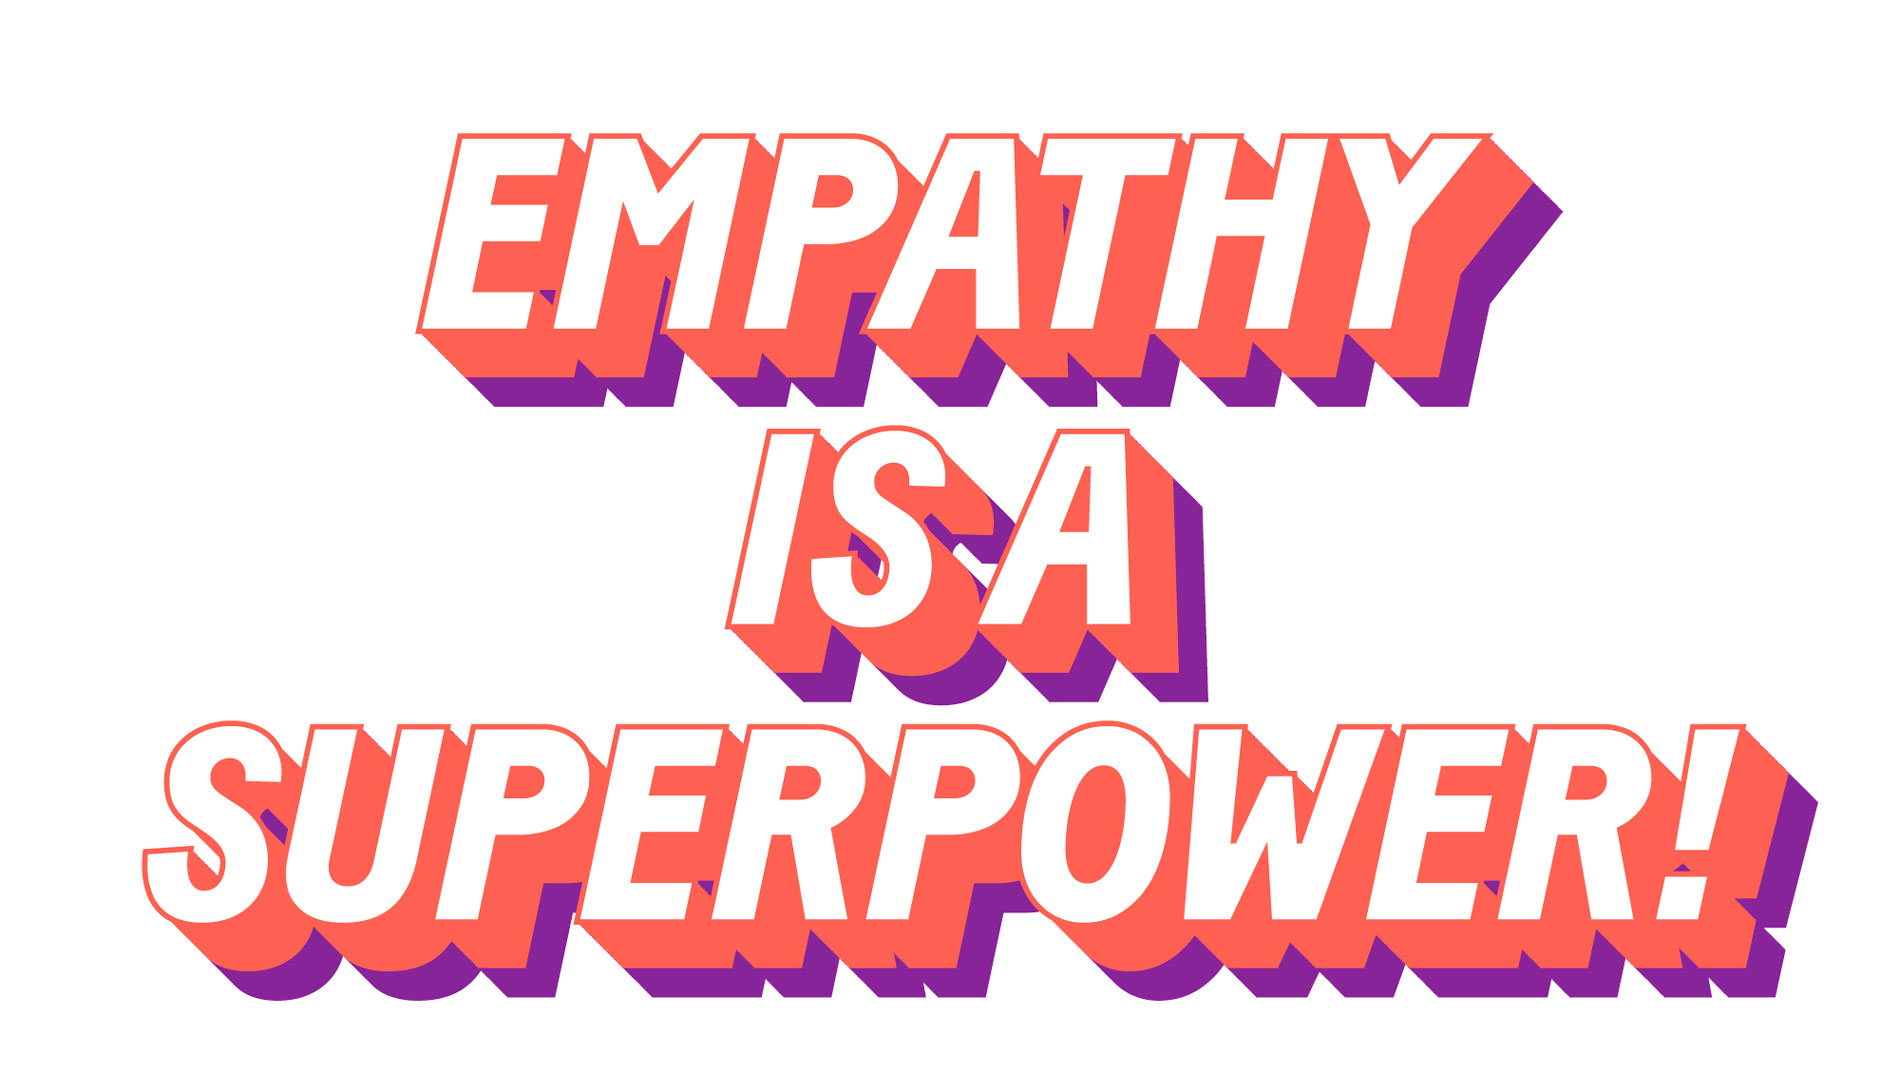 Empathy is a superpower slogan